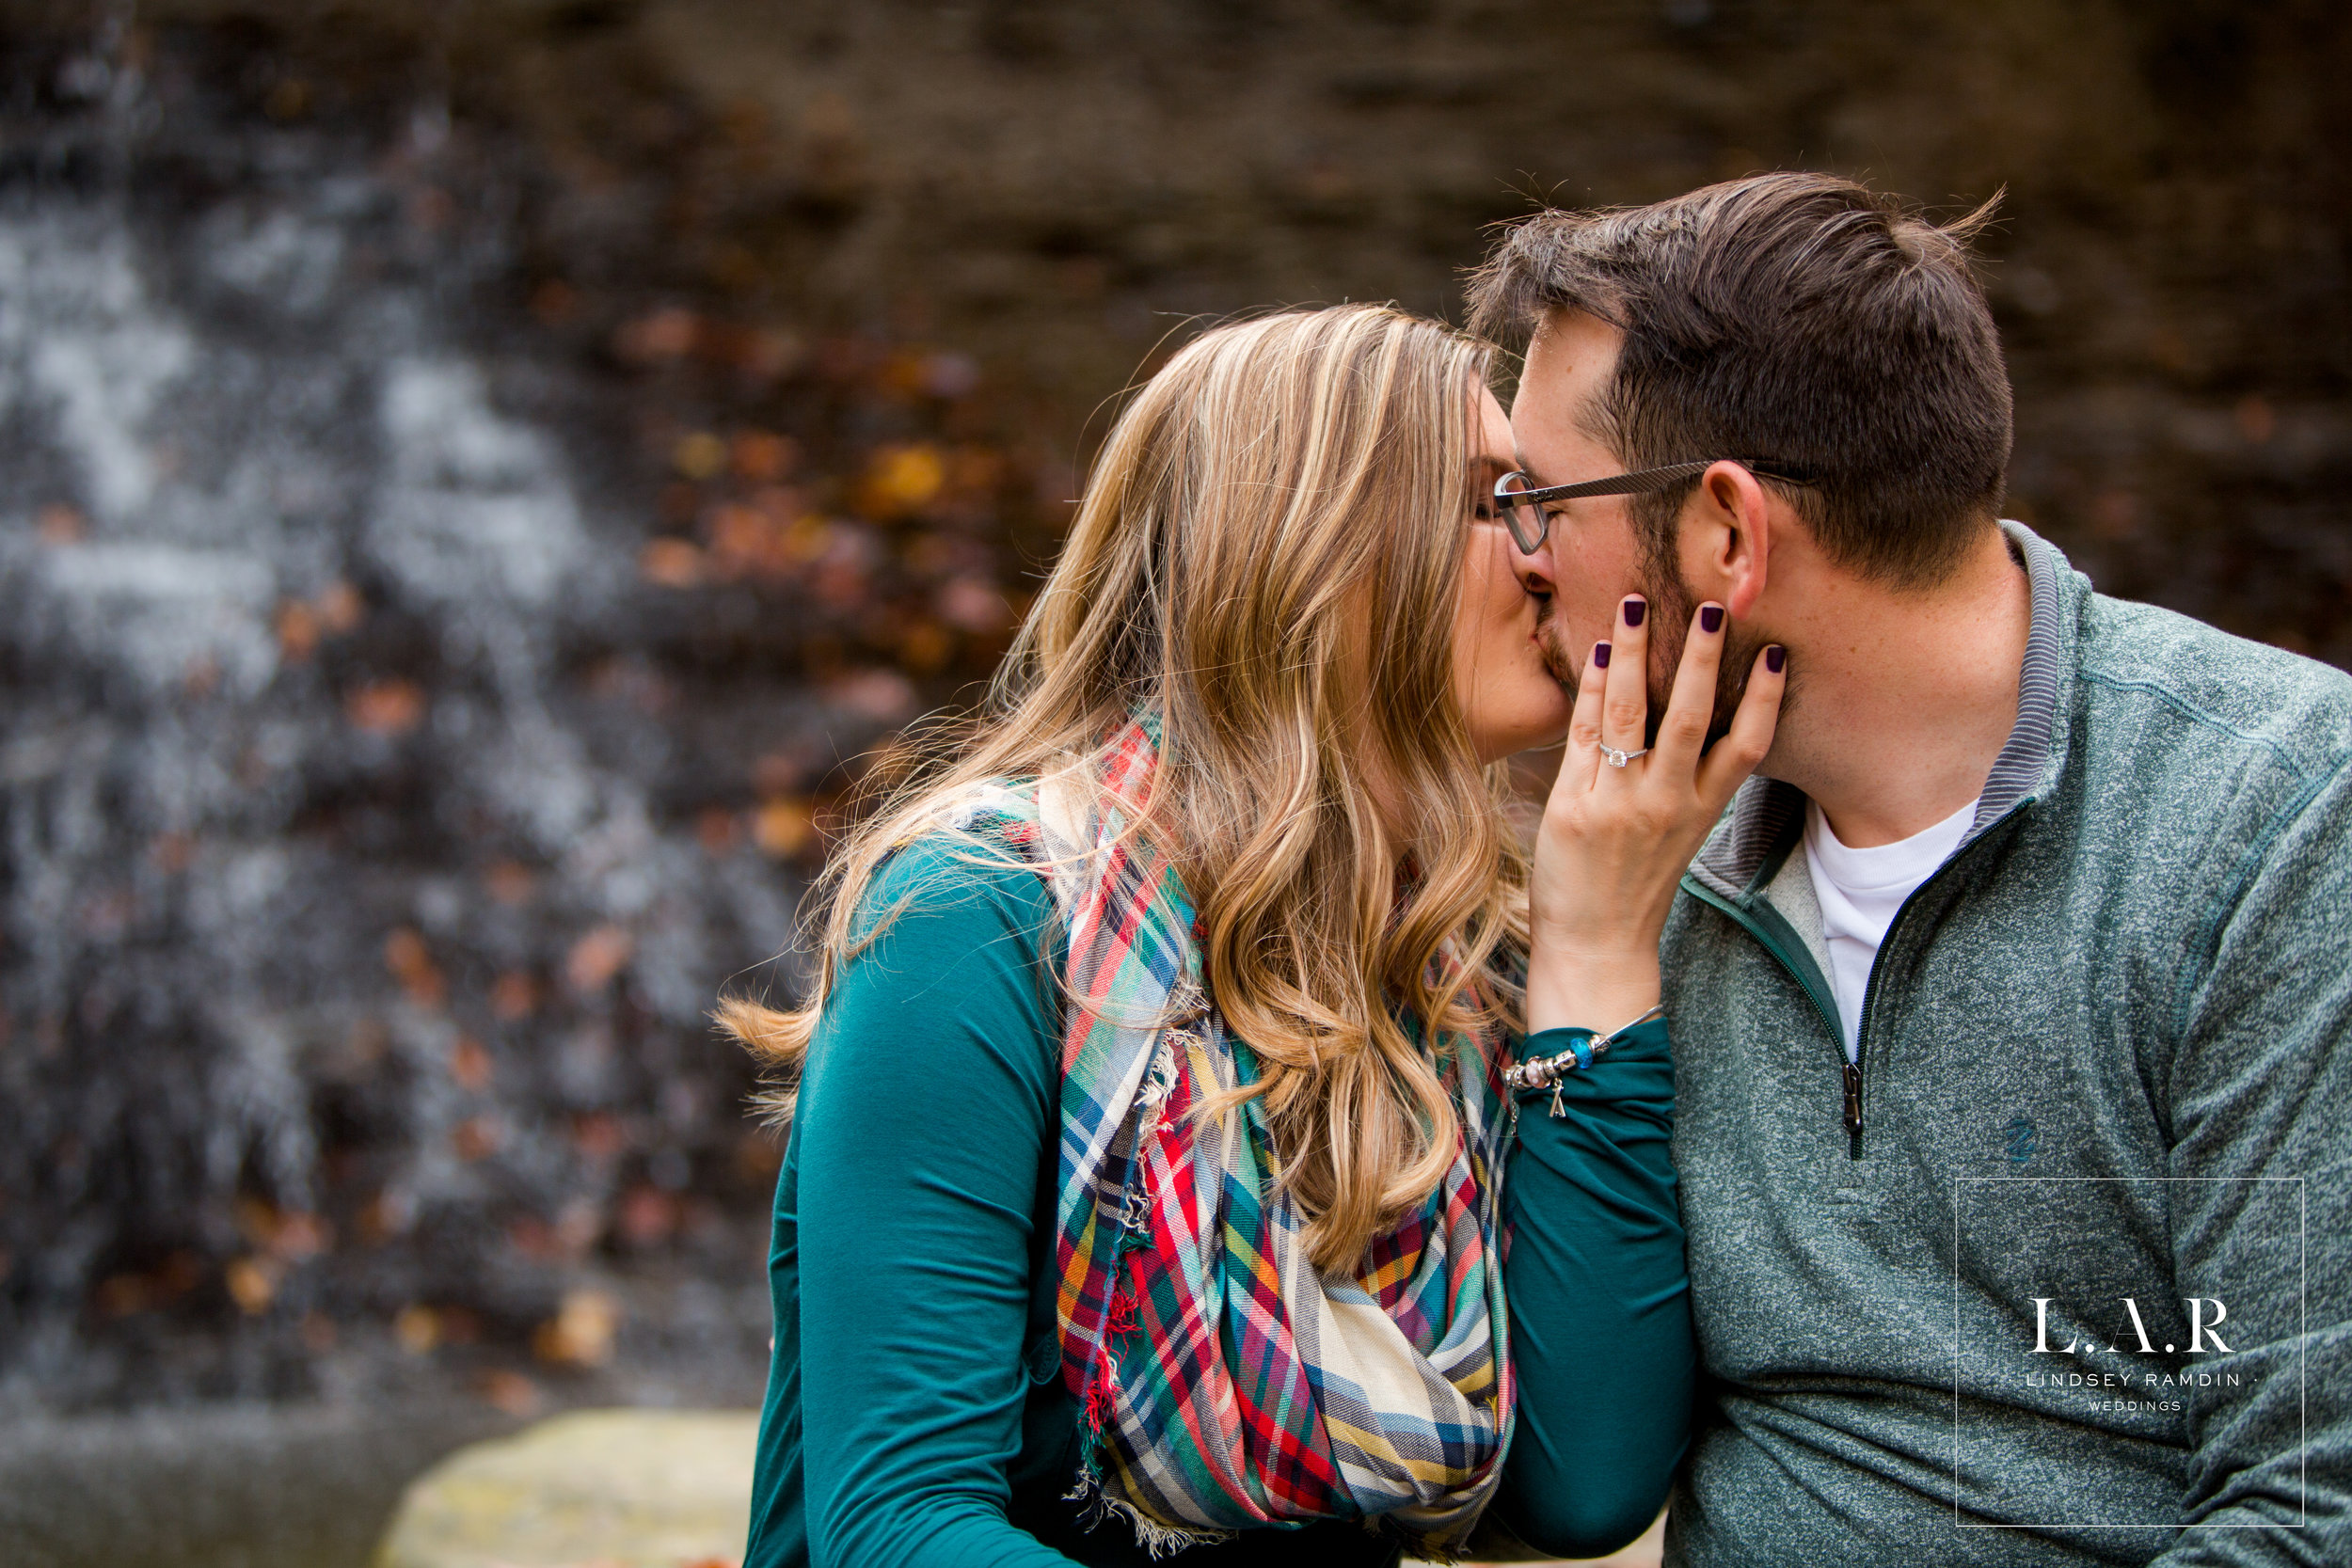 Cuyahoga Valley National Park Engagement Photo | L.A.R Weddings | Lindsey Ramdin